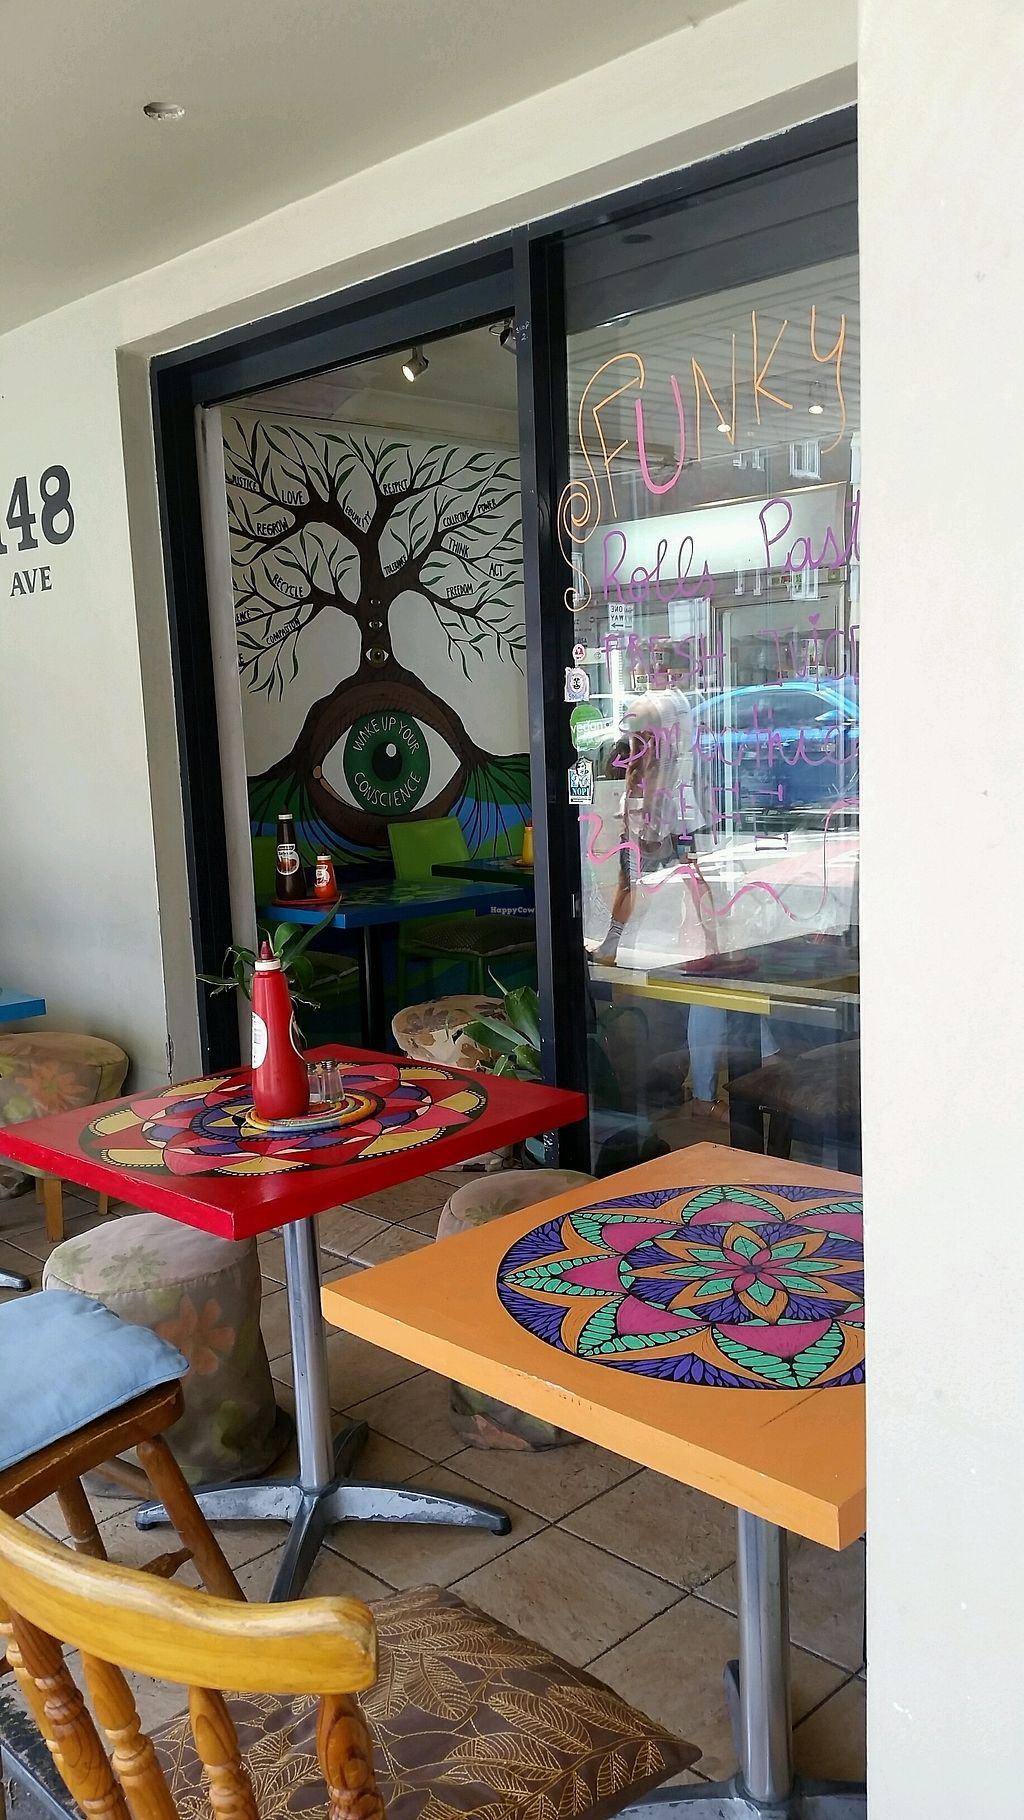 """Photo of Funky Pies  by <a href=""""/members/profile/emmawestrup"""">emmawestrup</a> <br/>Funky Pies, funky furniture! <br/> February 12, 2018  - <a href='/contact/abuse/image/17244/358339'>Report</a>"""